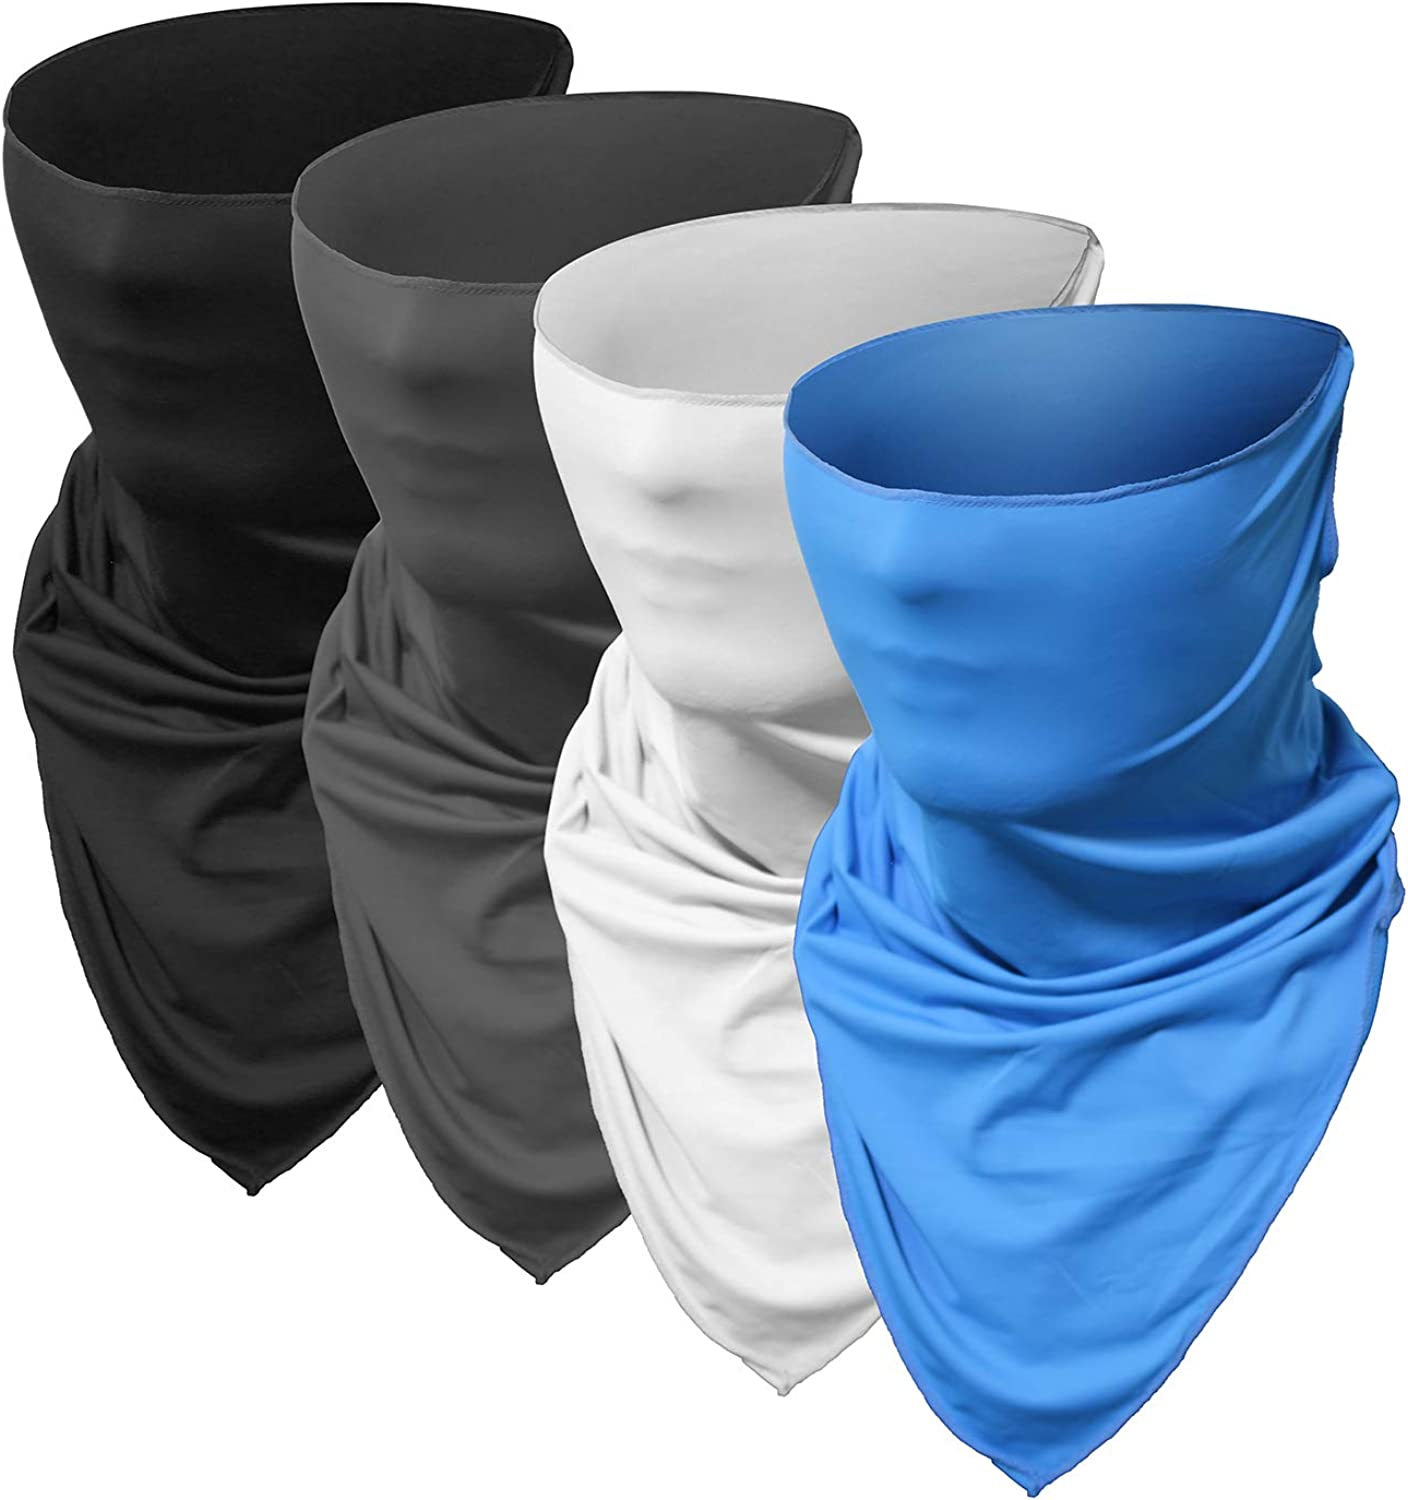 Men and Women's Face Cover Scarf Bandanas Neck Gaiter Dust UV Sun Protection for Festivals and Outdoors